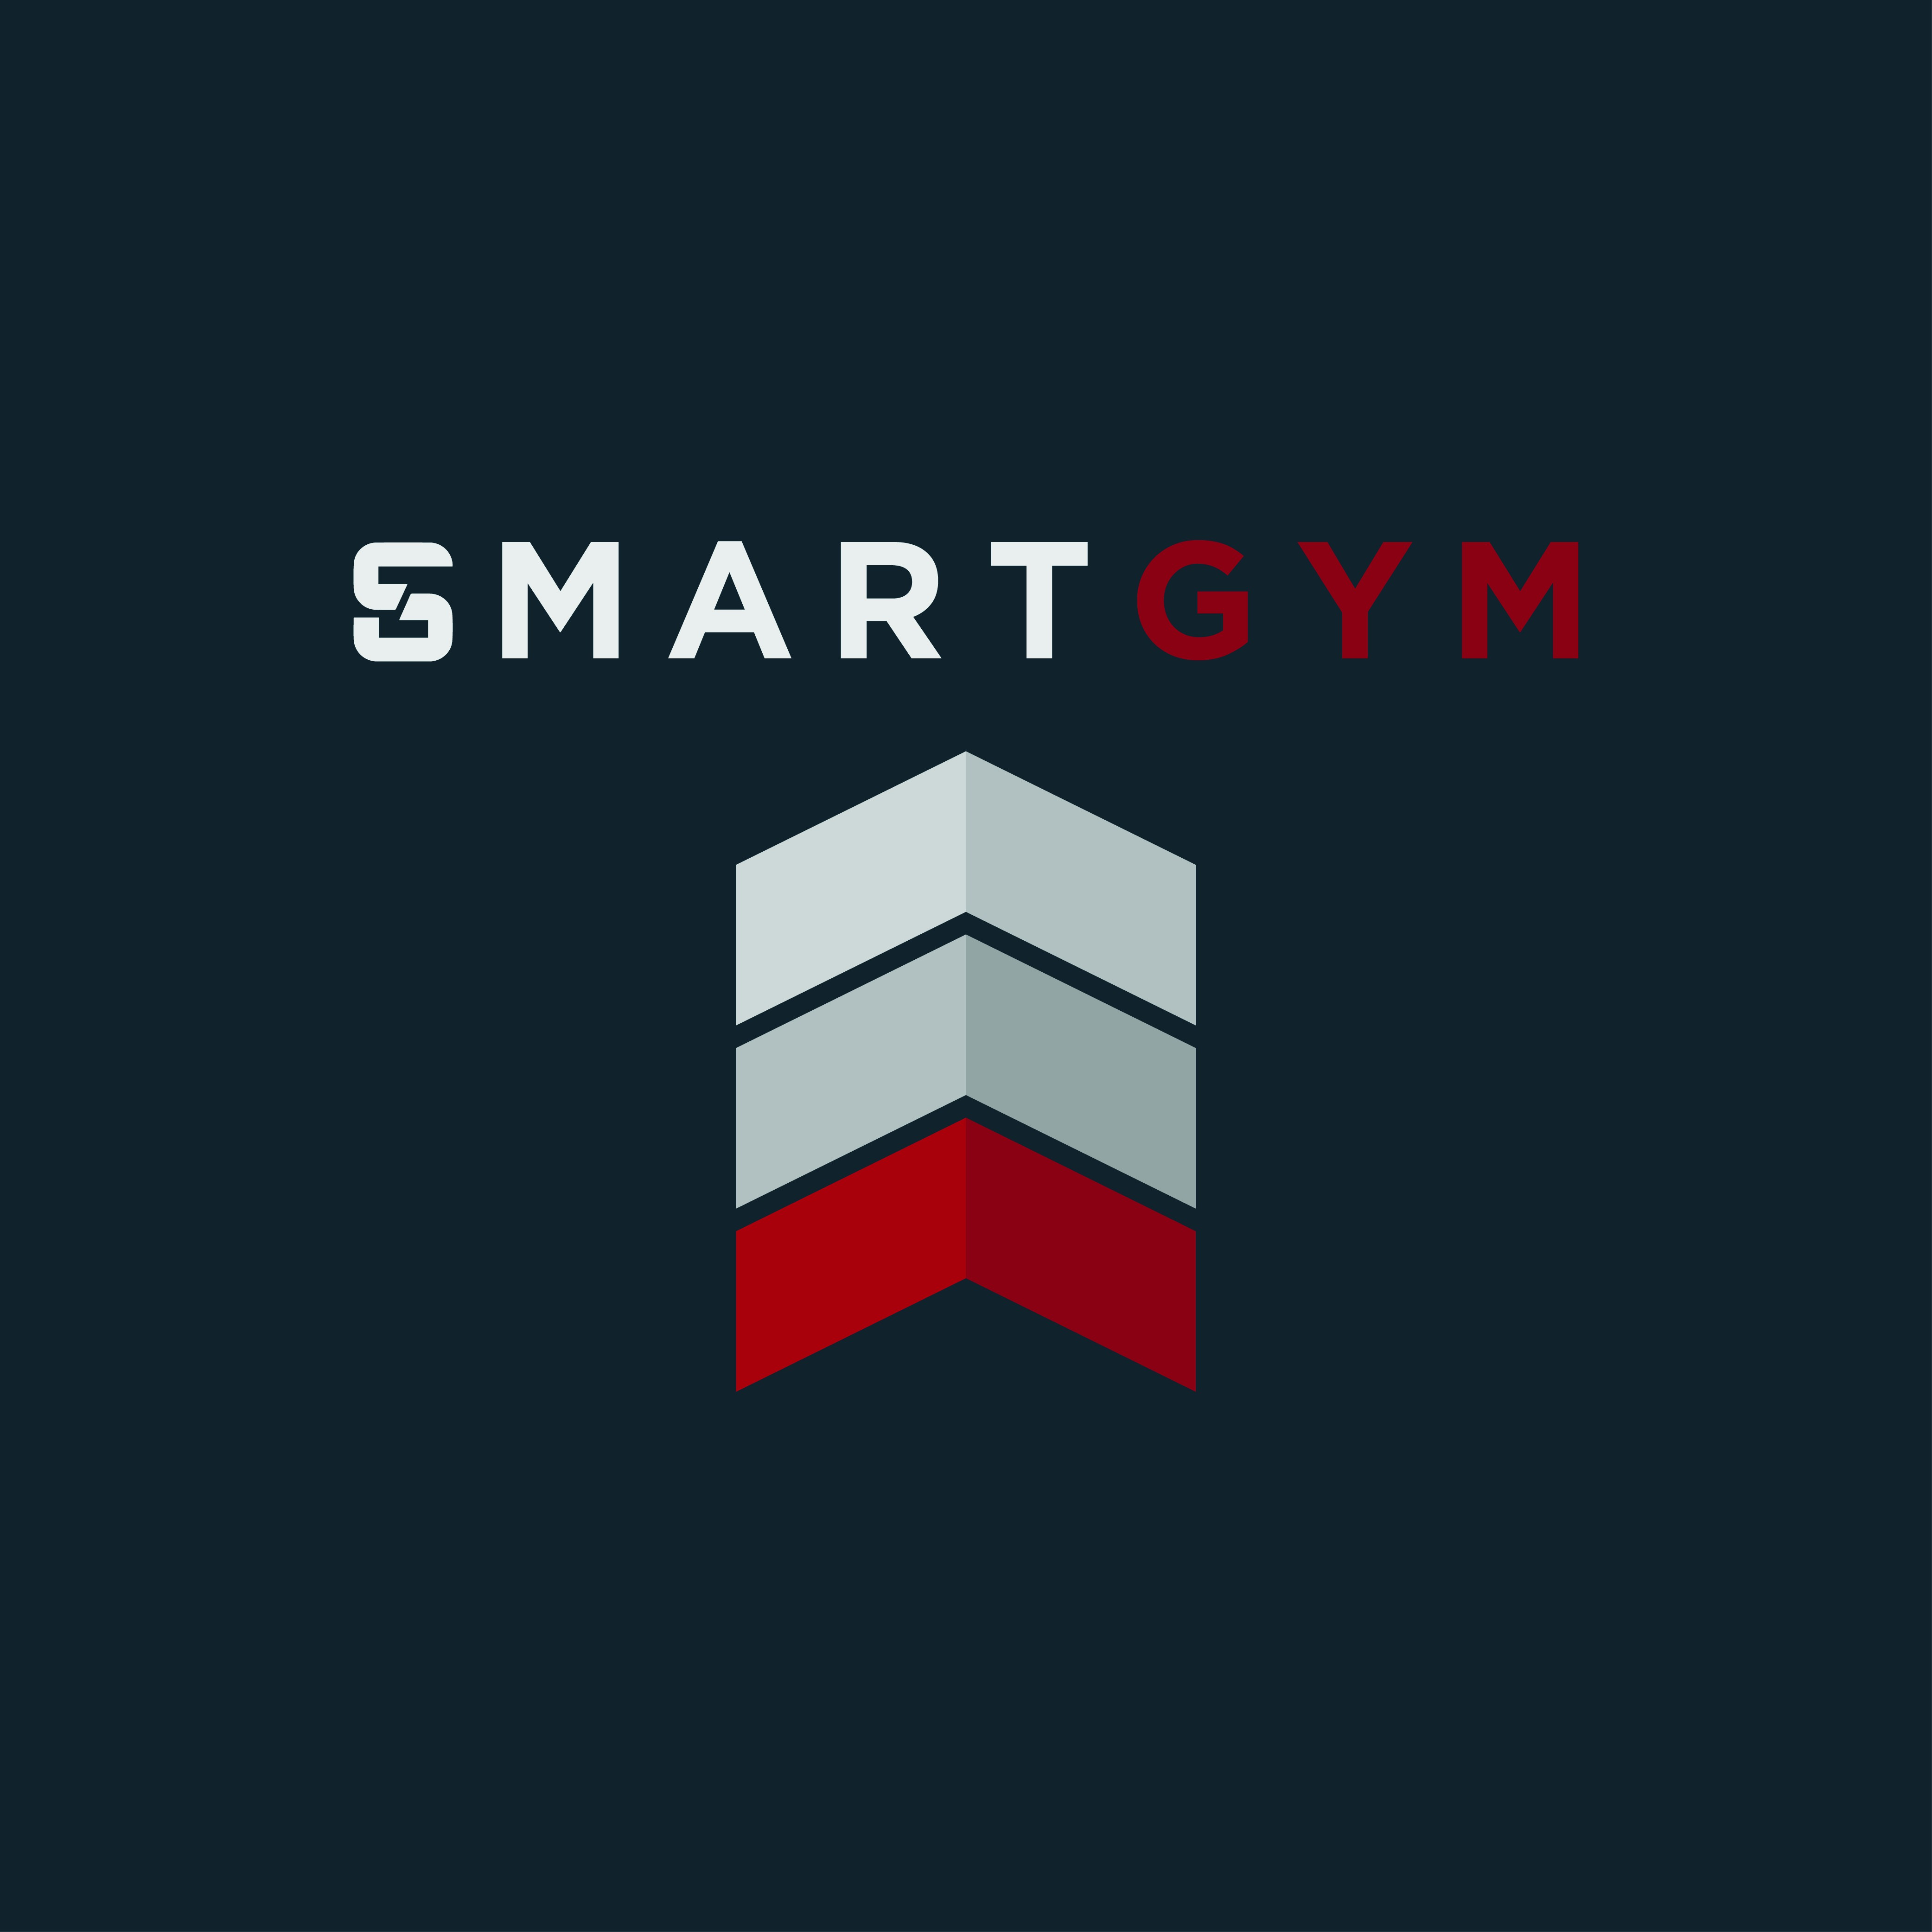 Functional Gym needs an unique Logo - be creative!